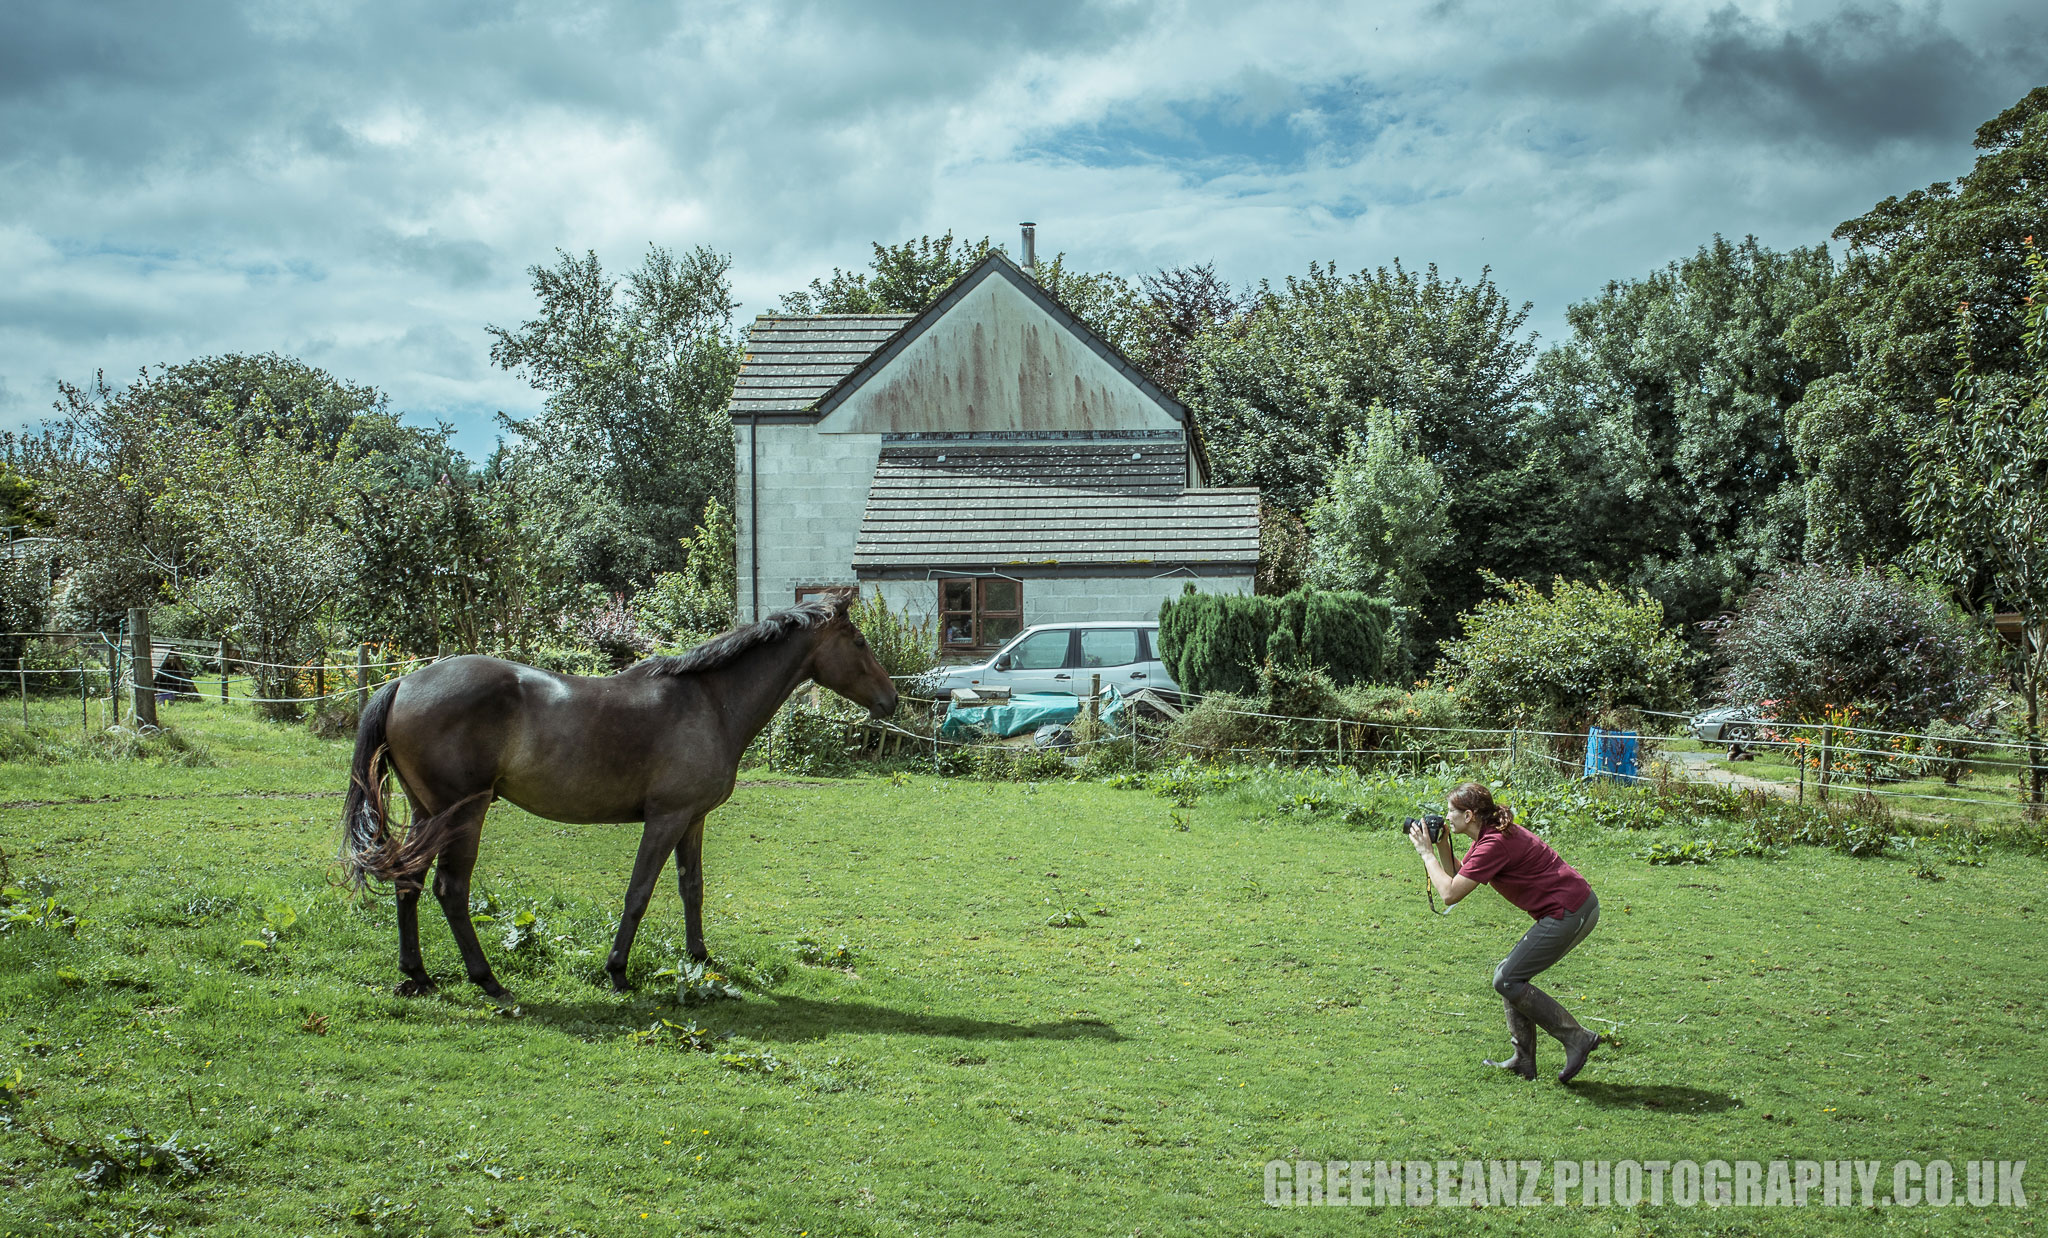 Outstanding Horsewoman Photographs Her Horse in Cornwall